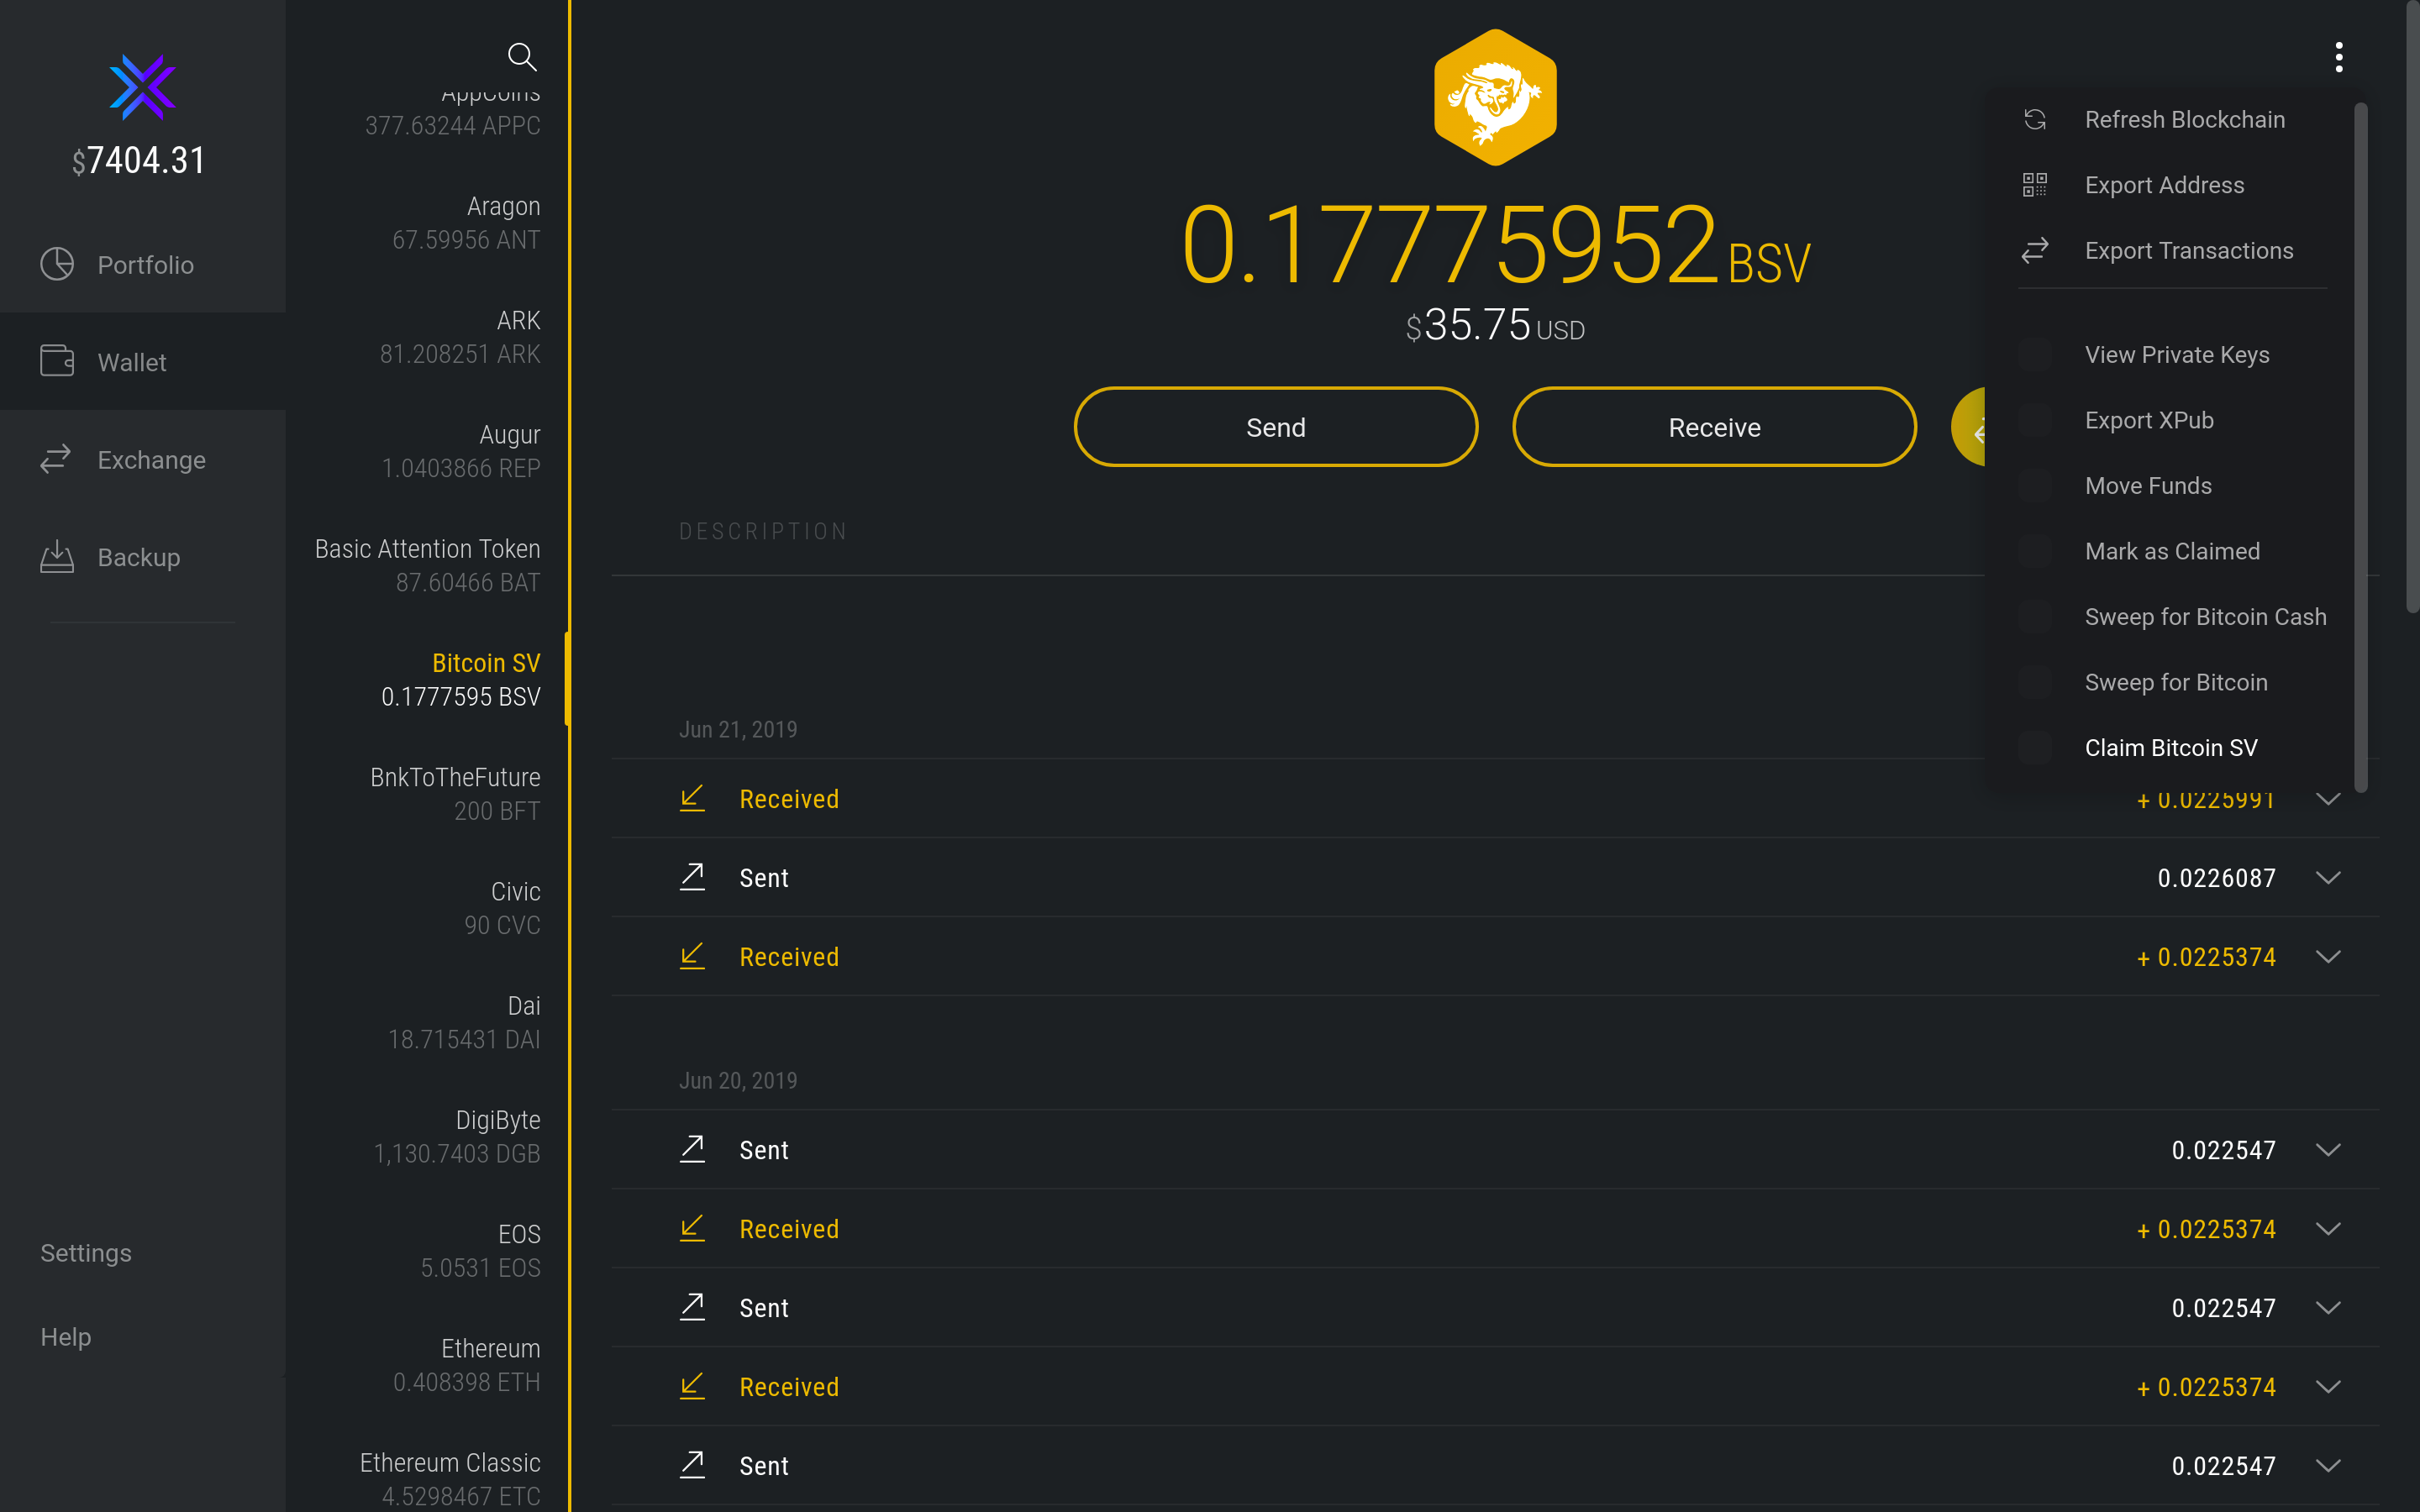 How do I split BCH/BSV held on another wallet? - Exodus Support